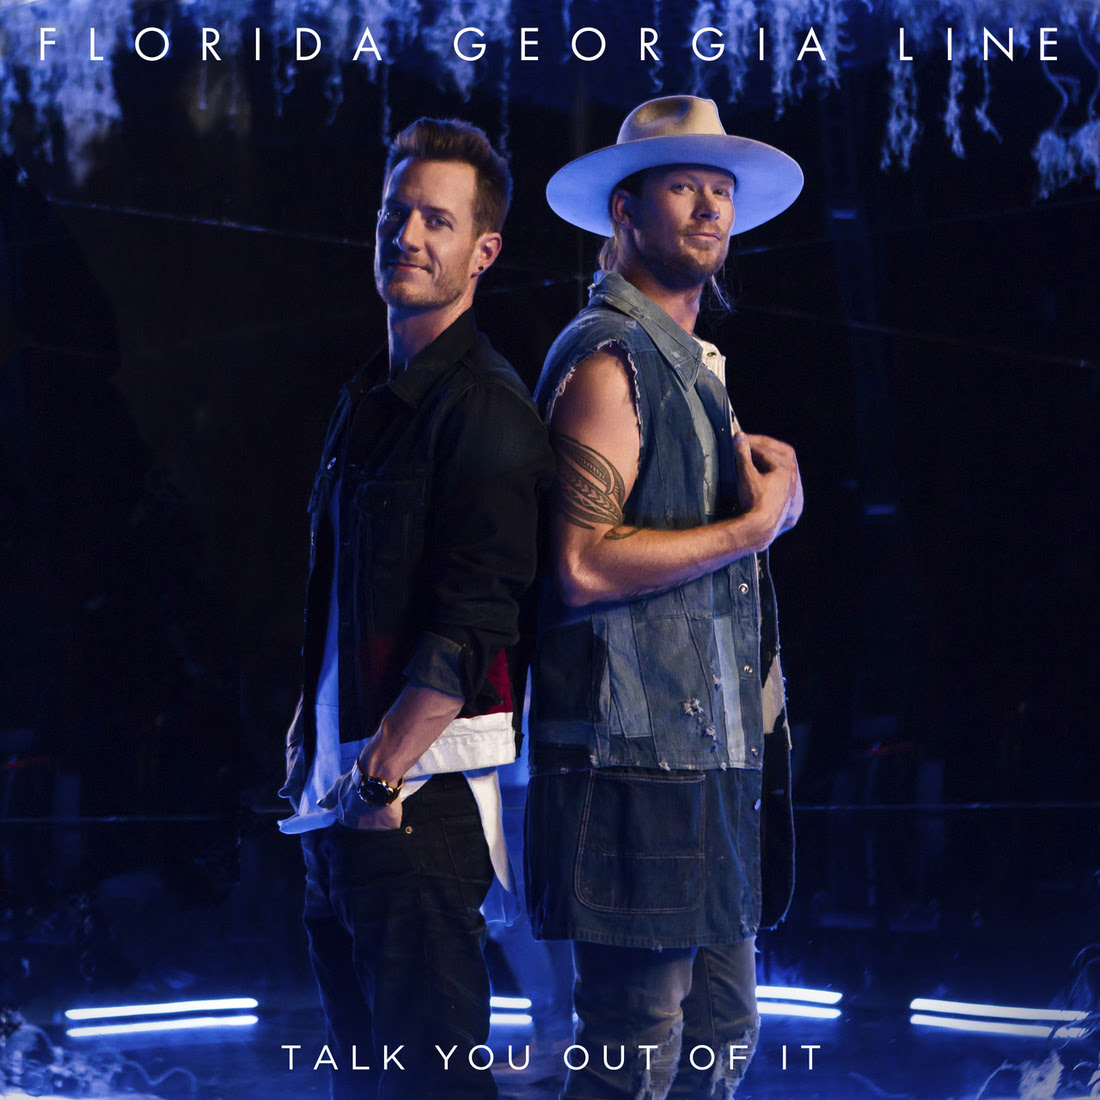 FLORIDA GEORGIA LINE UNCOVERS STEAMY NEW SINGLE